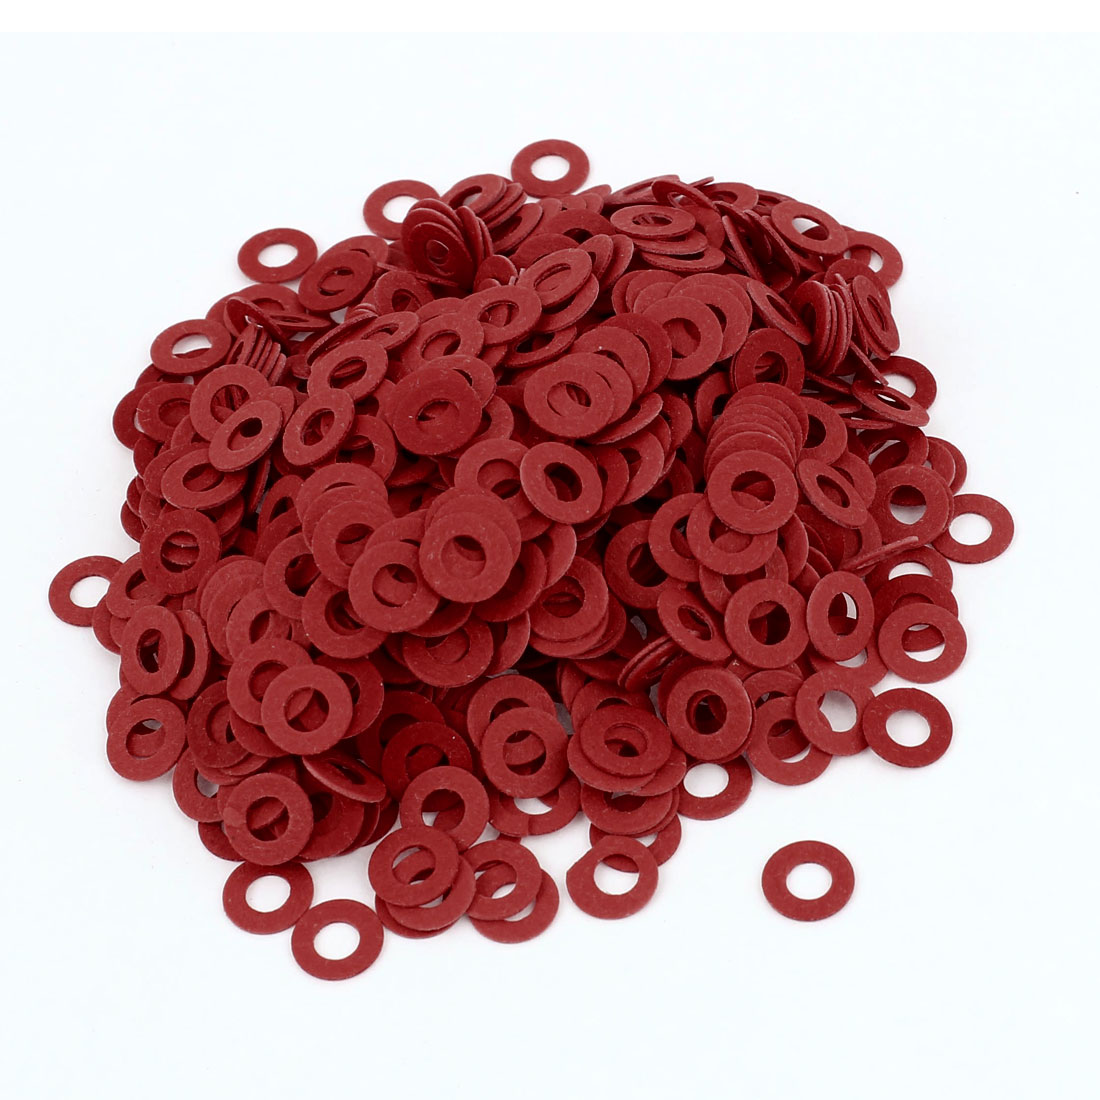 Fiber Flat Insulating Washer Ring 4mmx8mmx0.5mm 1000Pcs Red for Screws